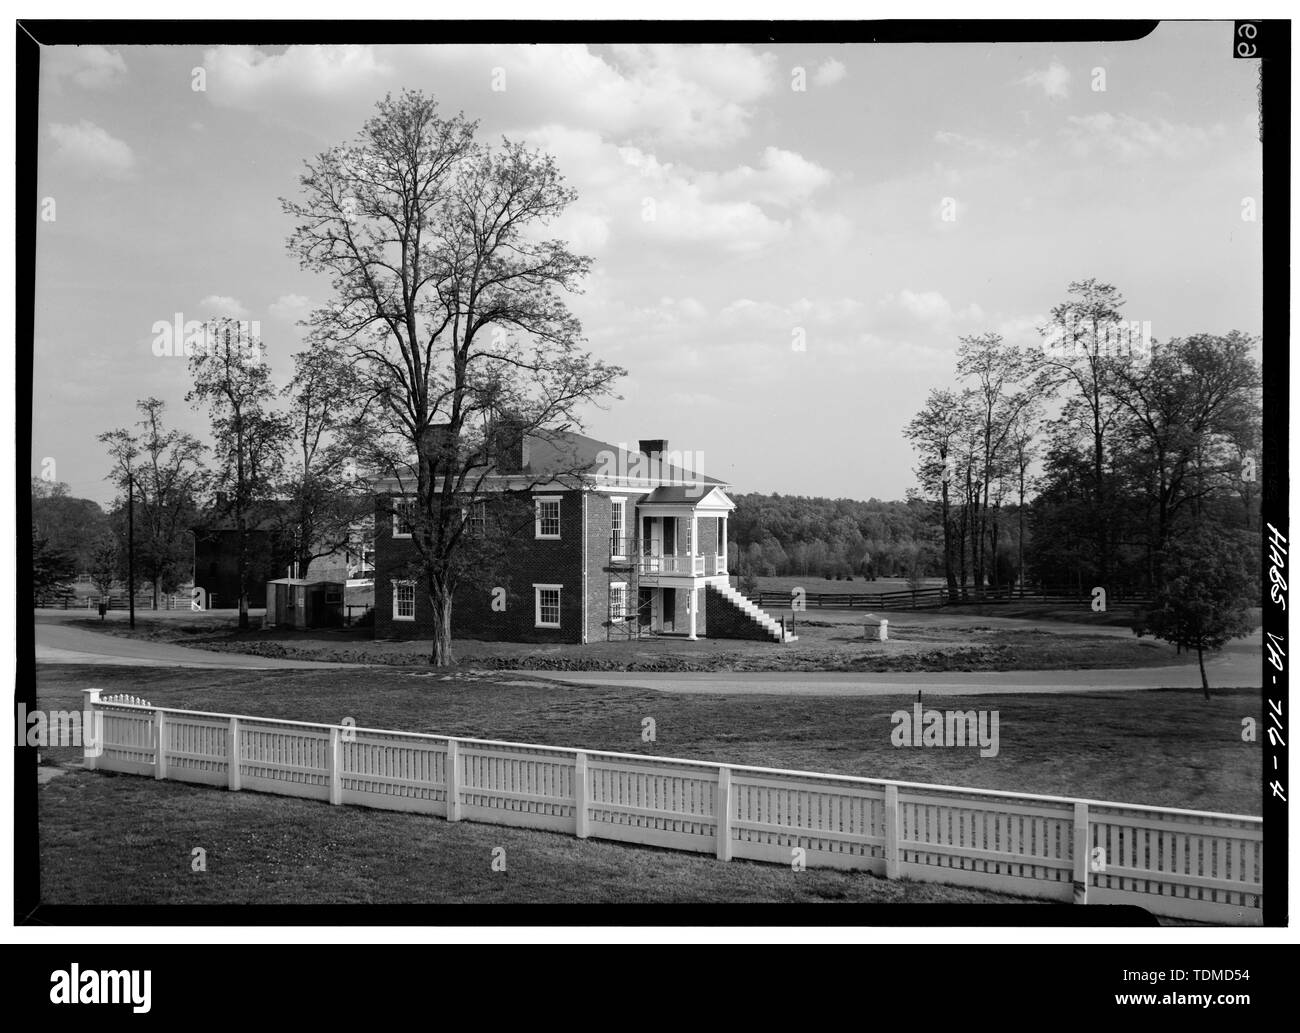 PERSPECTIVE VIEW OF WEST (FRONT) AND SOUTH SIDE - Appomattox Courthouse, Appomattox, Appomattox County, VA; Lee, Robert E; Grant, Ulysses S; Boucher, Jack E, photographer; Null, Druscilla J, historian - Stock Image